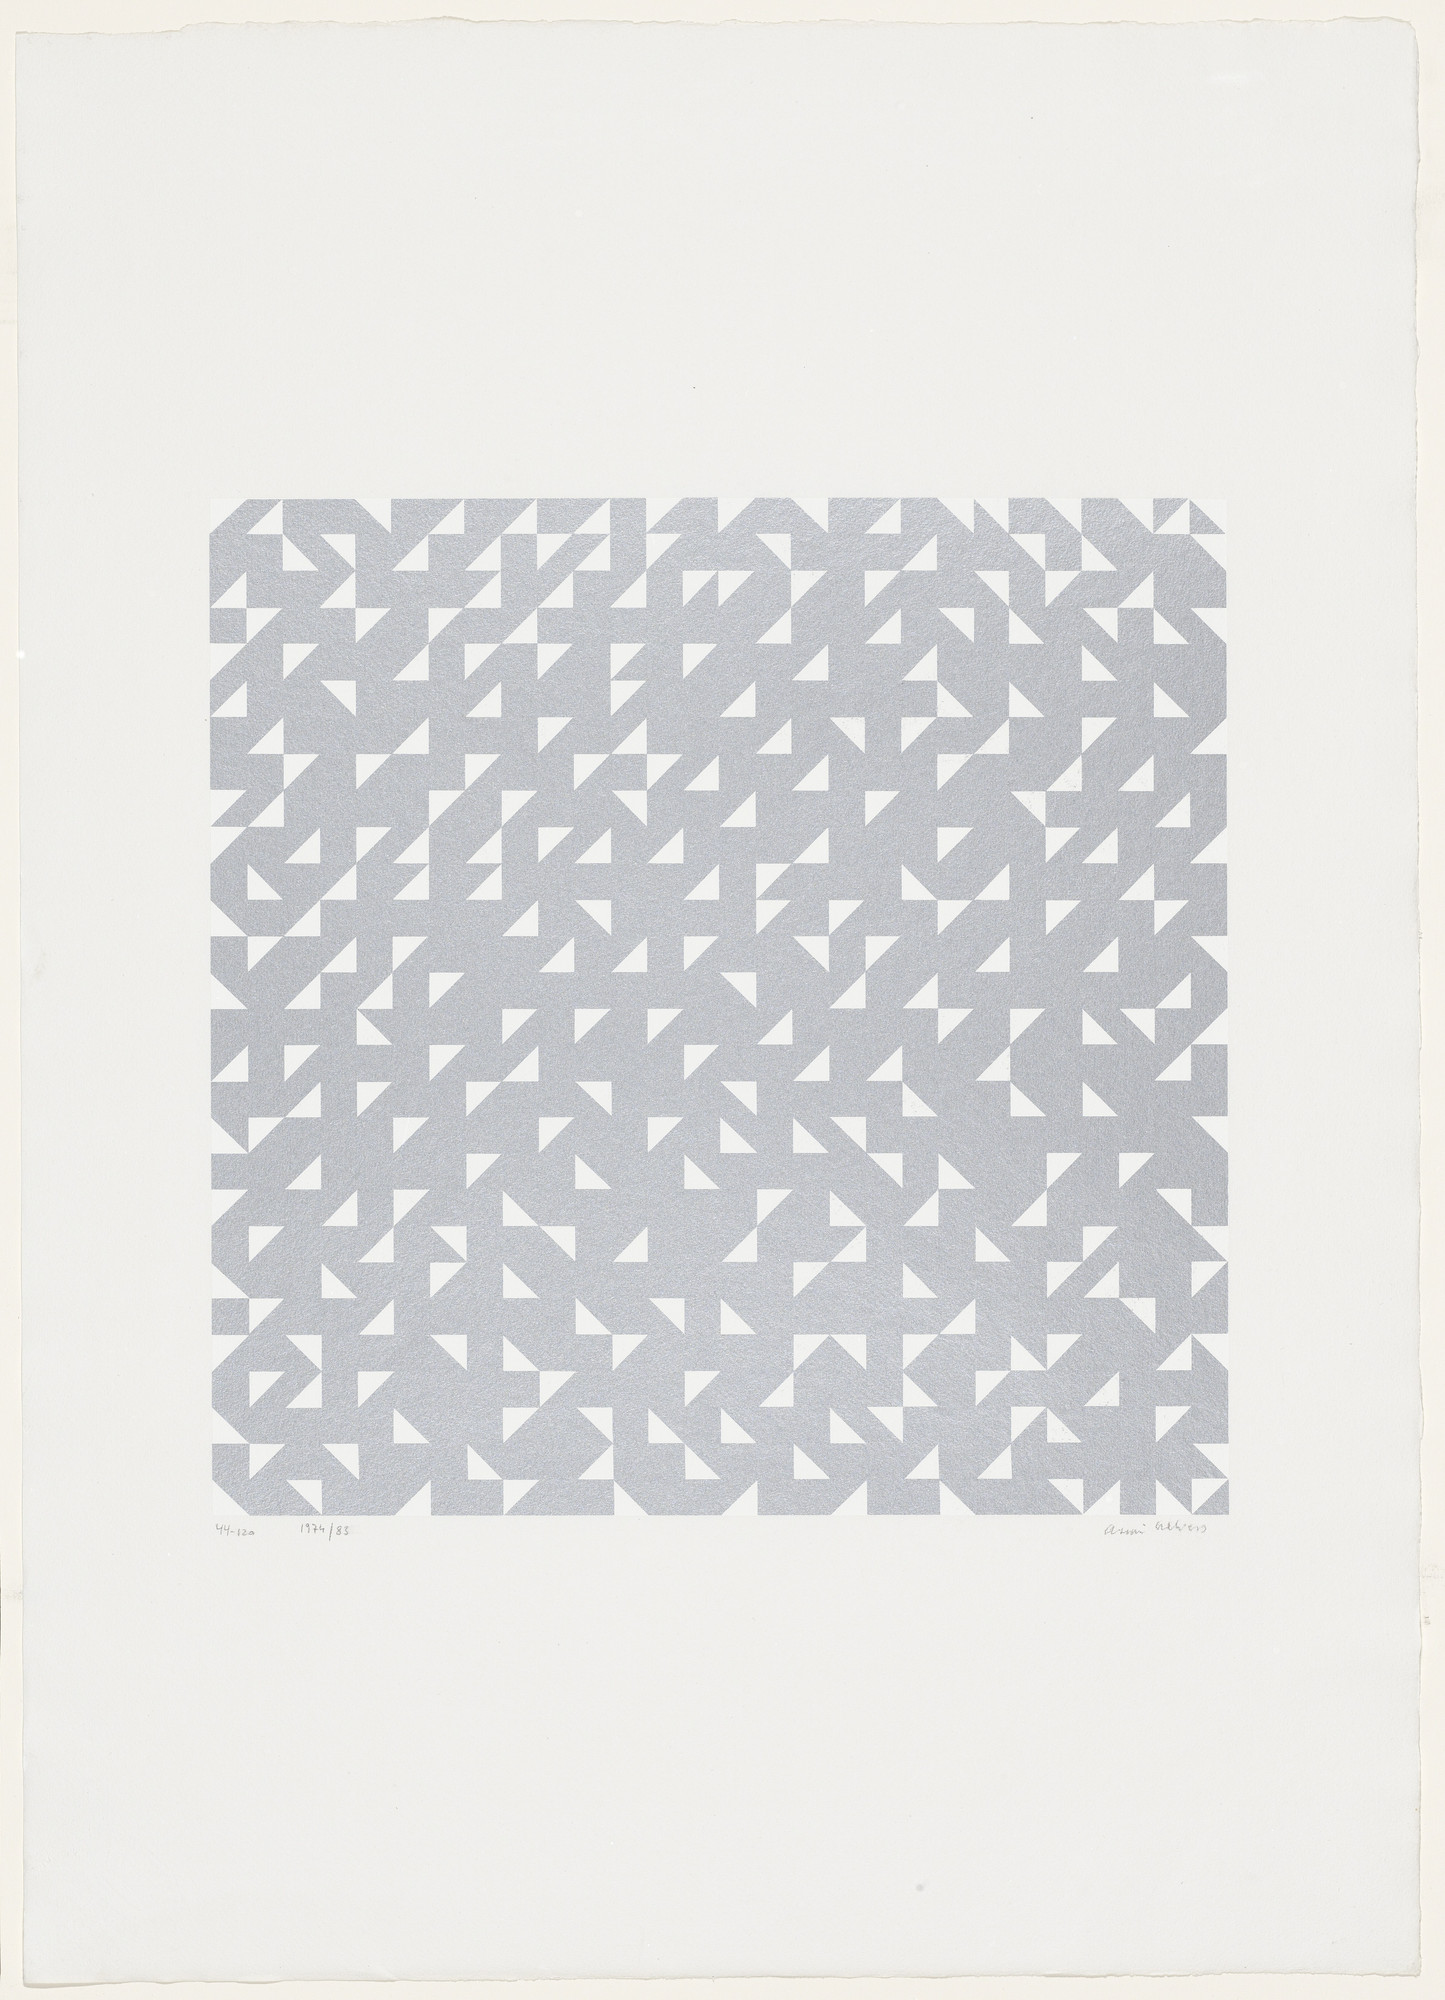 Anni Albers. Triangulated Intaglio from Connections. 1983